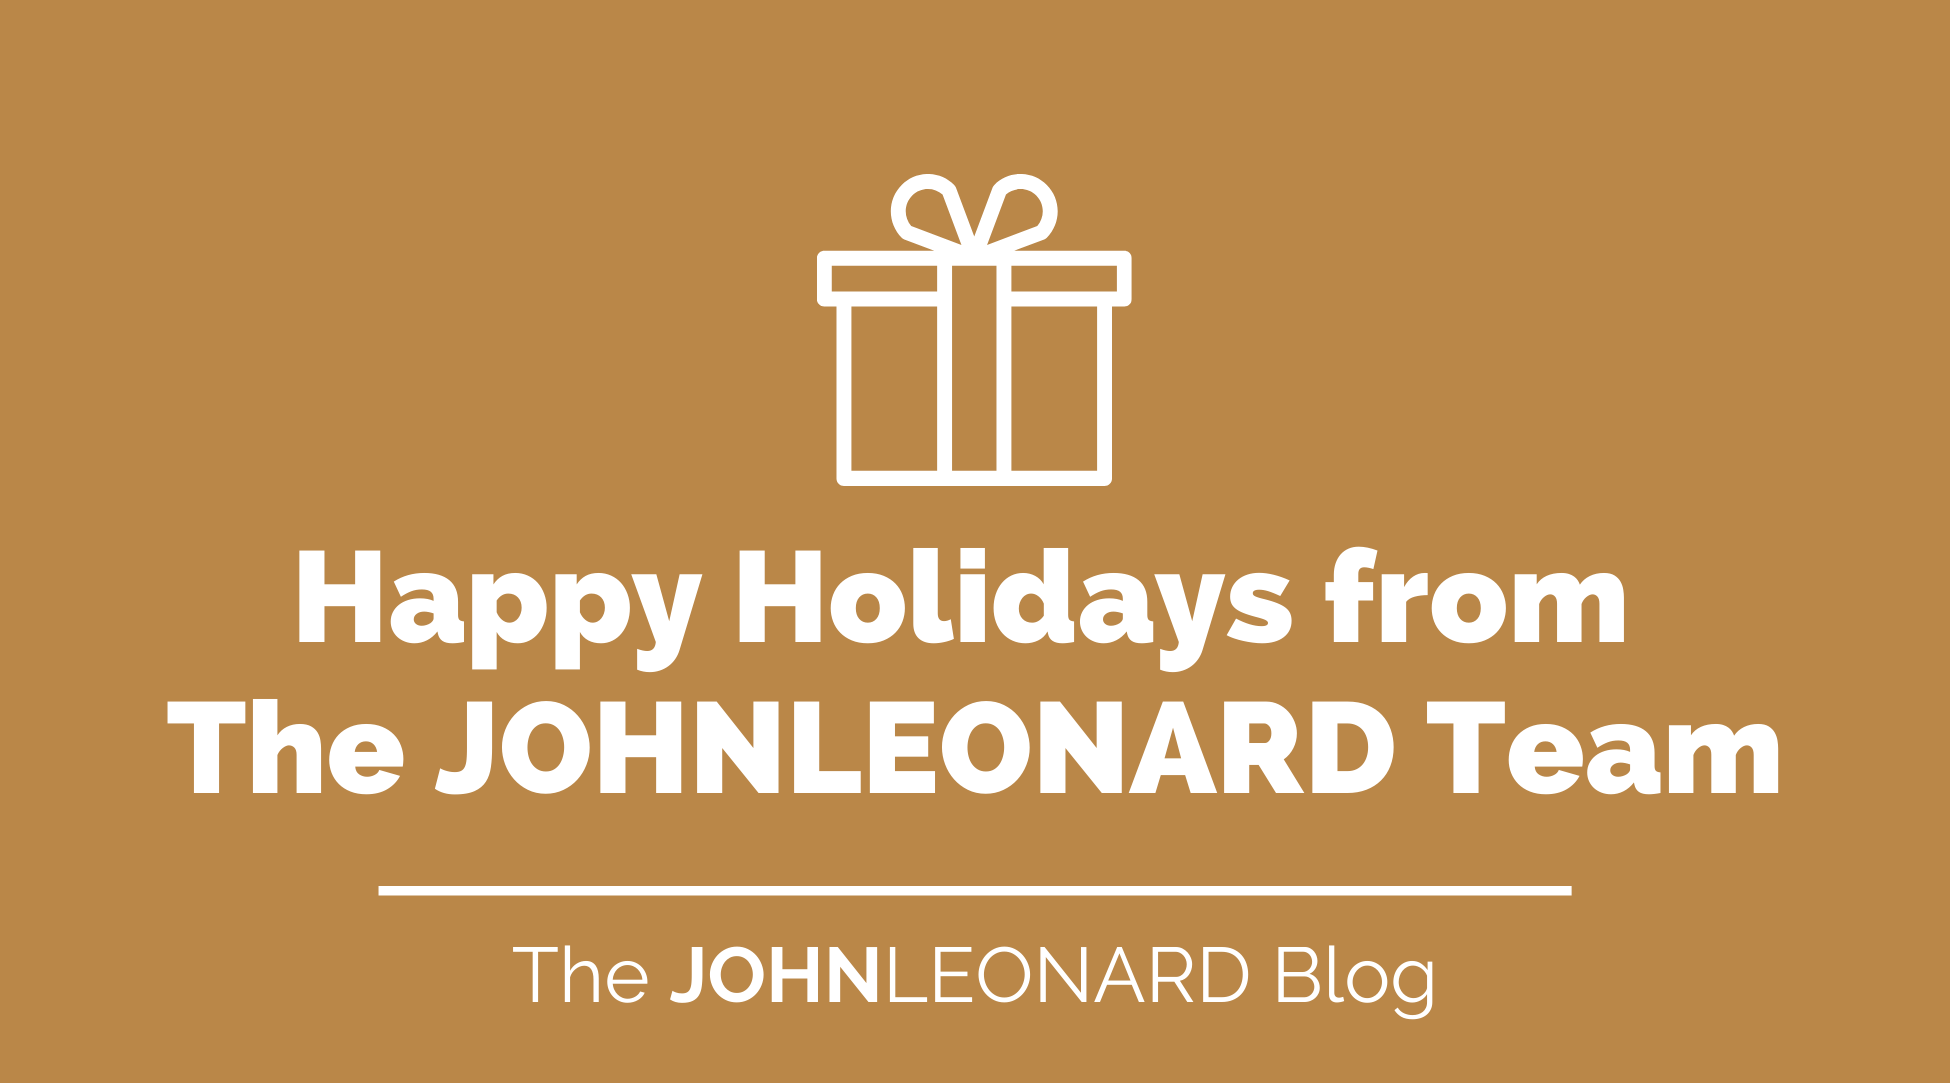 Happy Holidays from  The JOHNLEONARD Team (video)